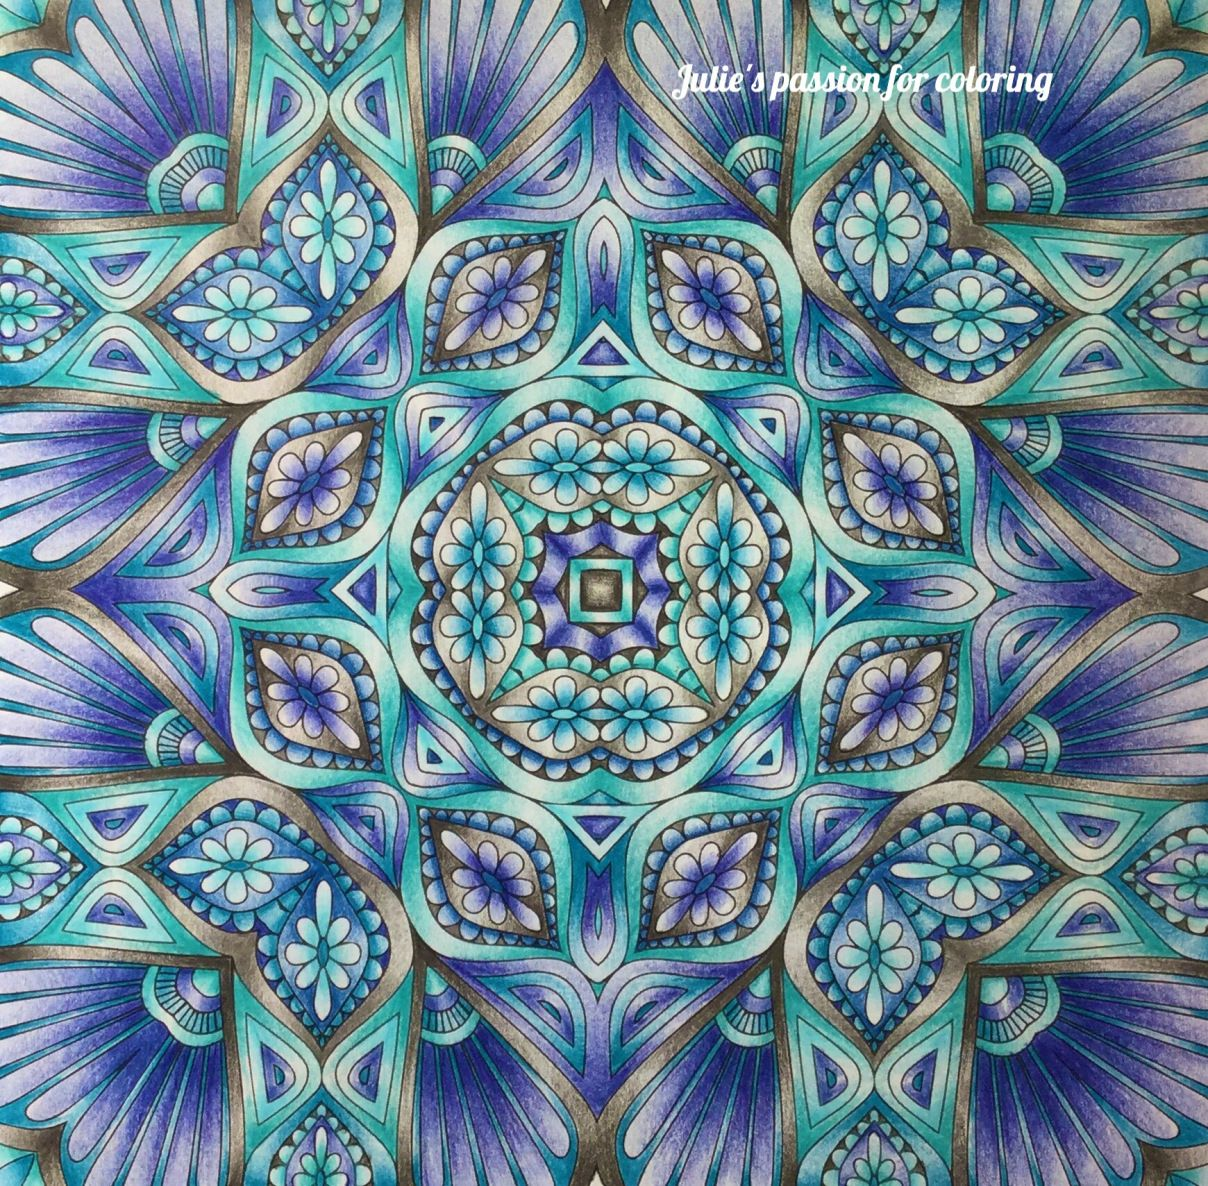 julie\'s passion for coloring | All about my passion for coloring ...